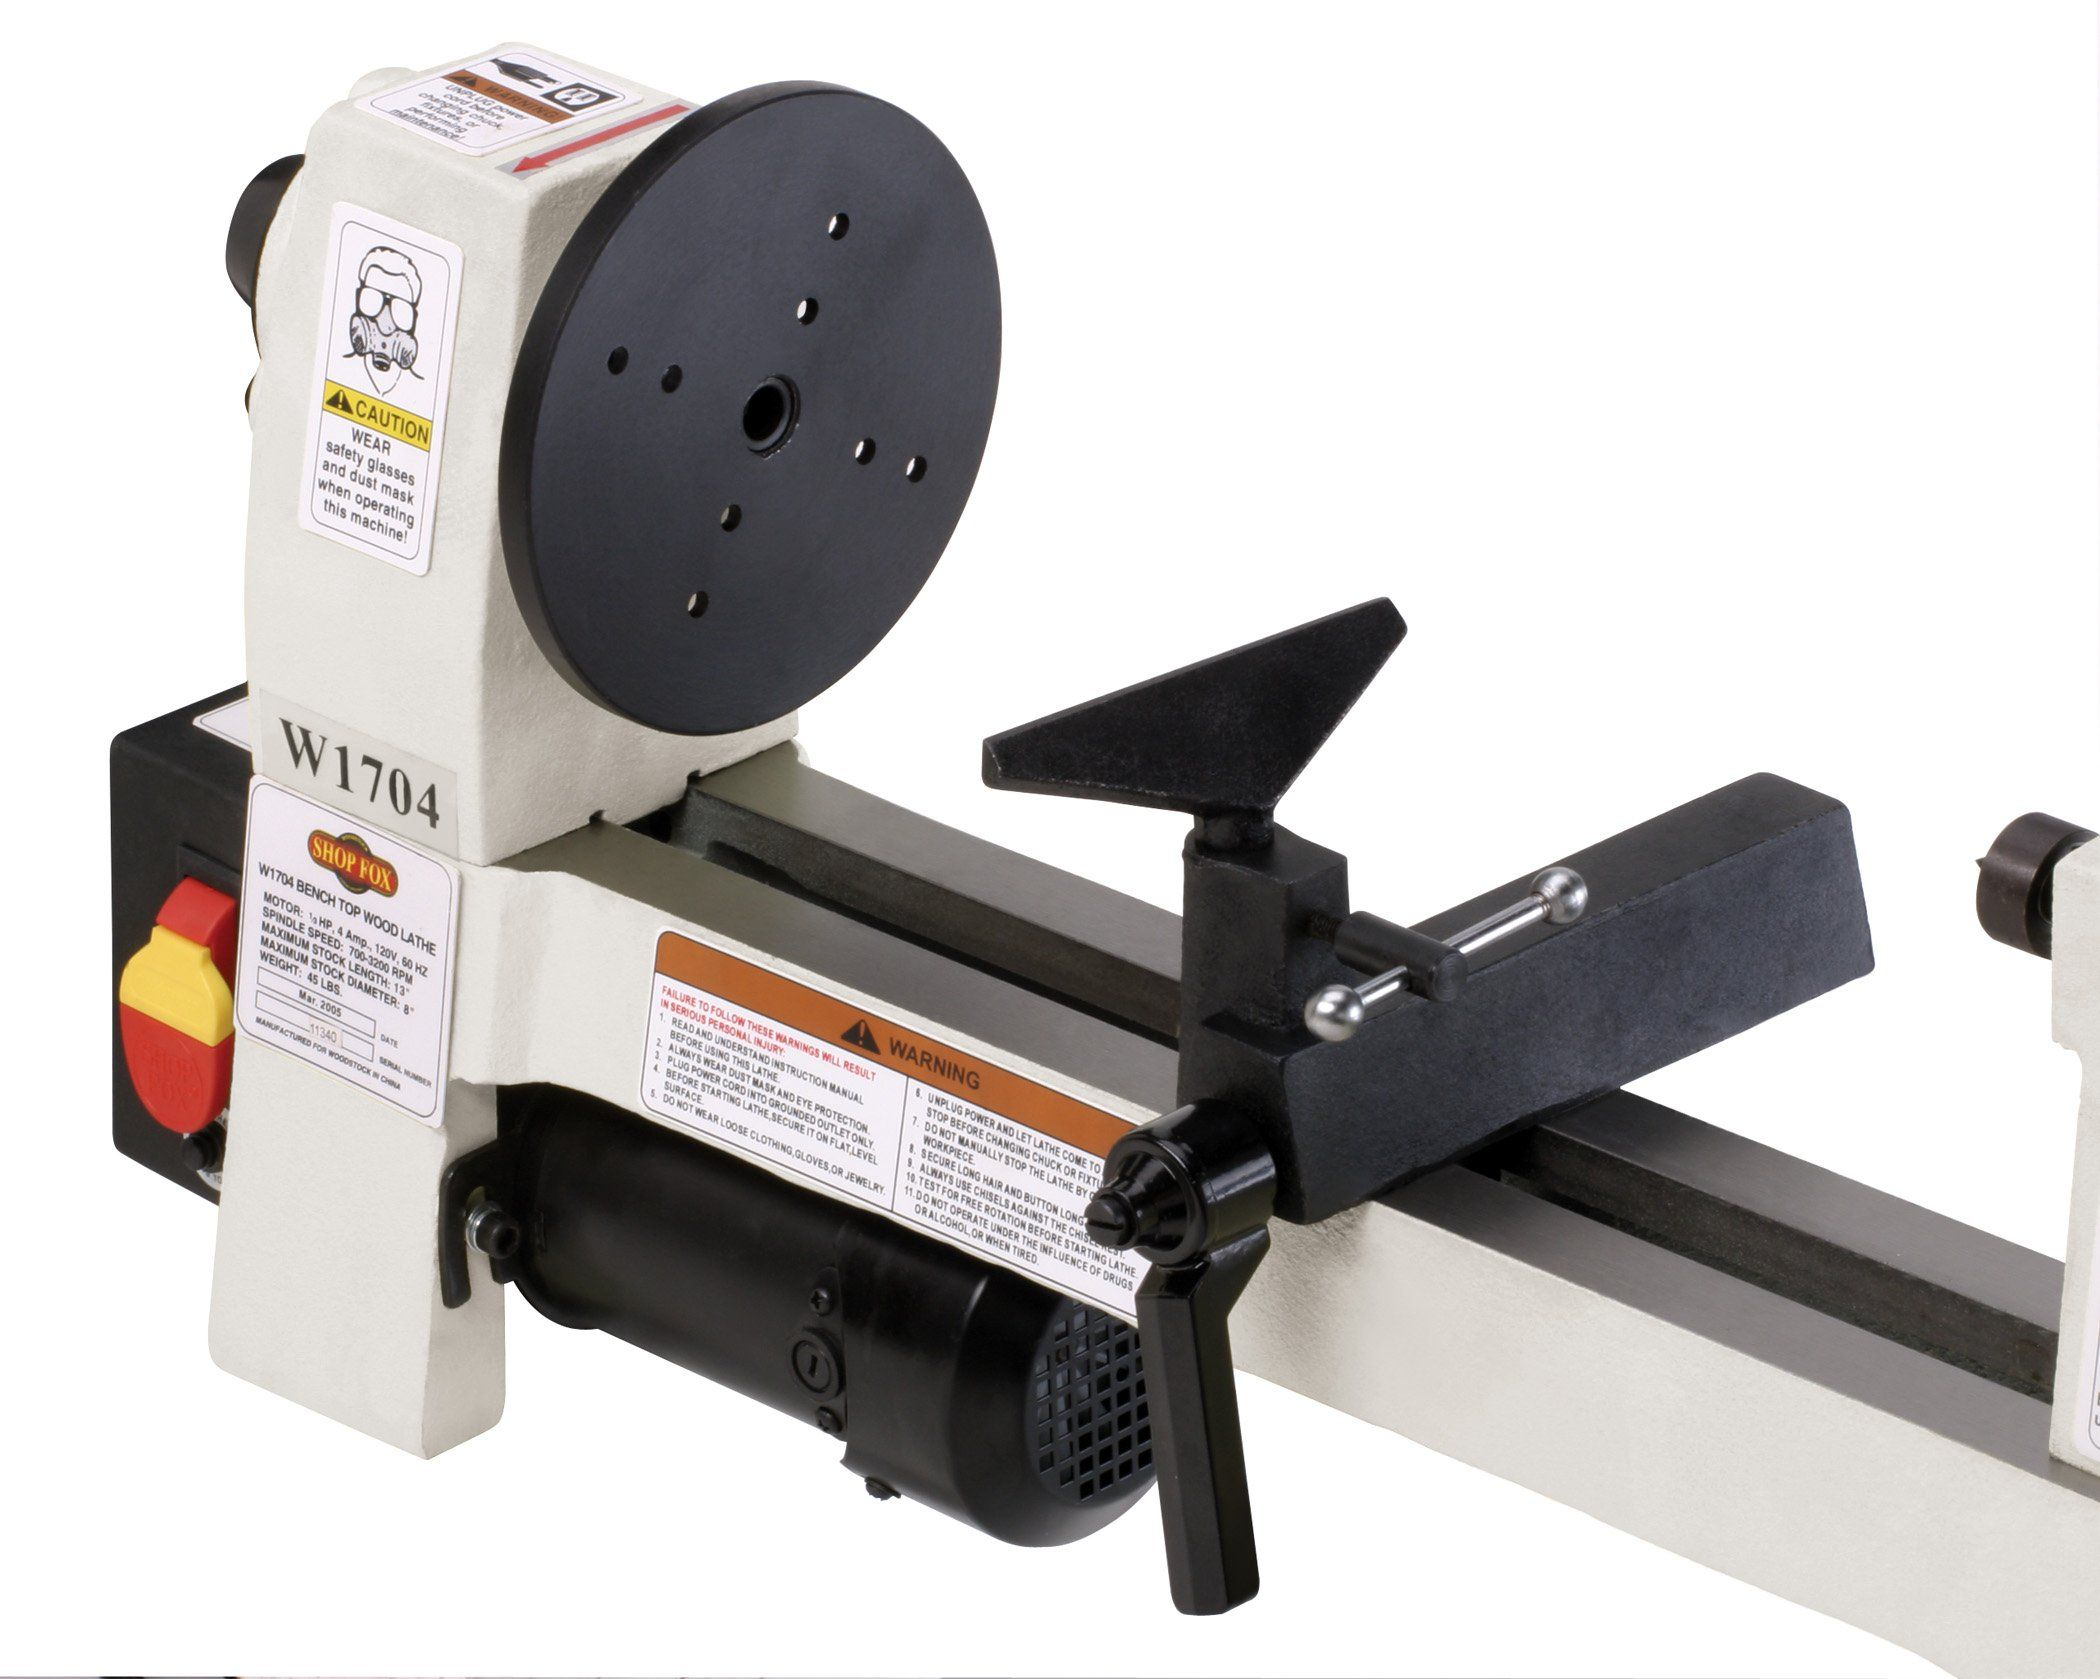 Shop Fox W1704 1 3horsepower Benchtop Lathe Find Out More Regarding The Wonderful Product At The Photo Web Diy Table Saw Craftsman Table Saw Benchtop Lathe